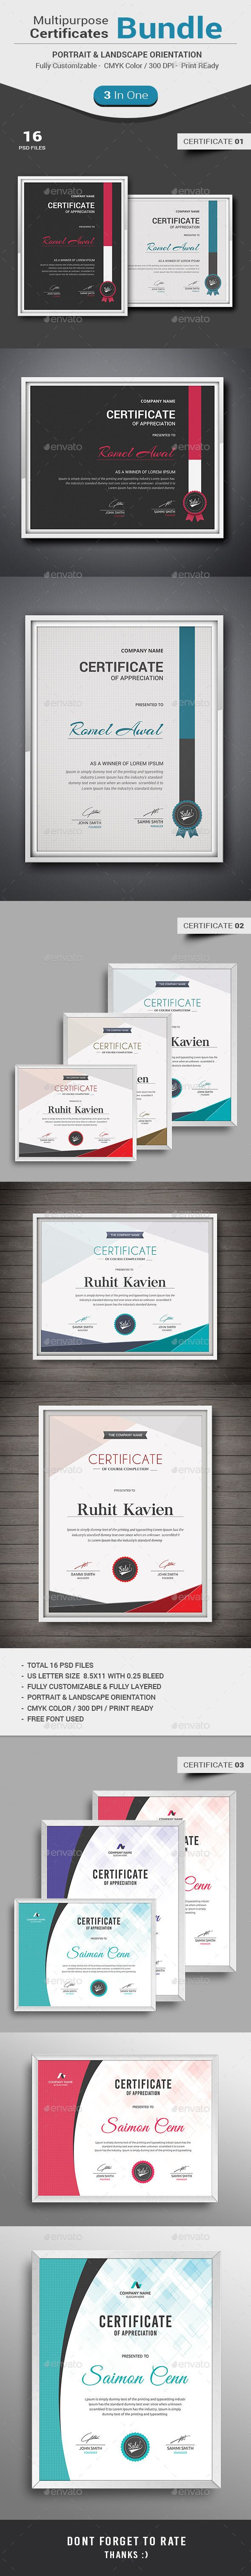 89 best certificate of merit images on pinterest certificate certificate bundle award certificatescertificate templatescertificate of meritgraduation yadclub Choice Image